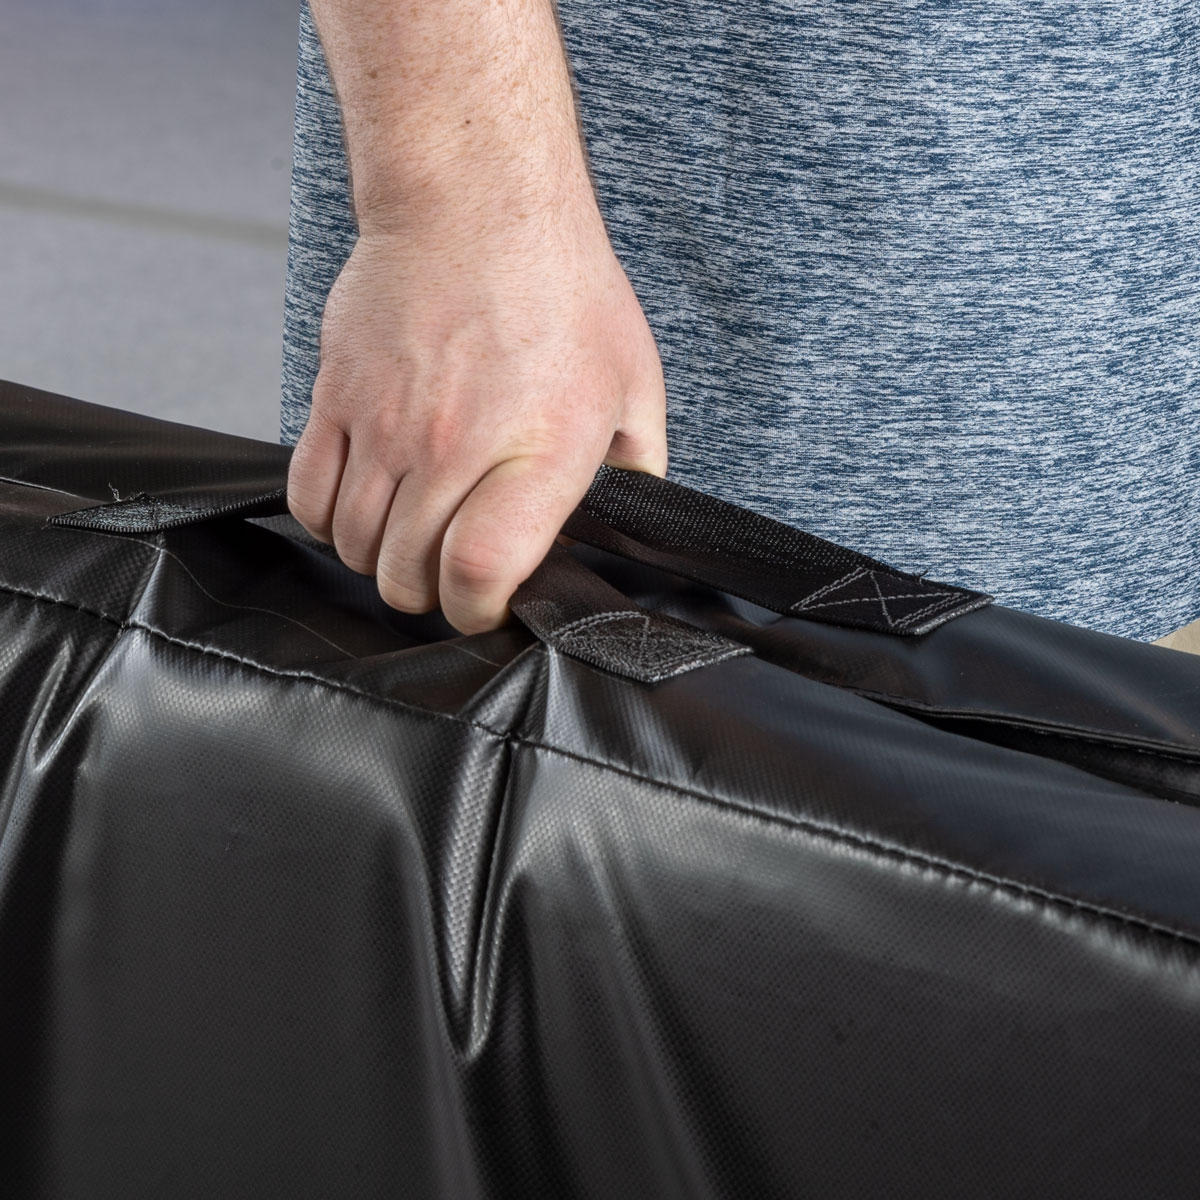 carry handles on a stunt suitcase mat by mancino